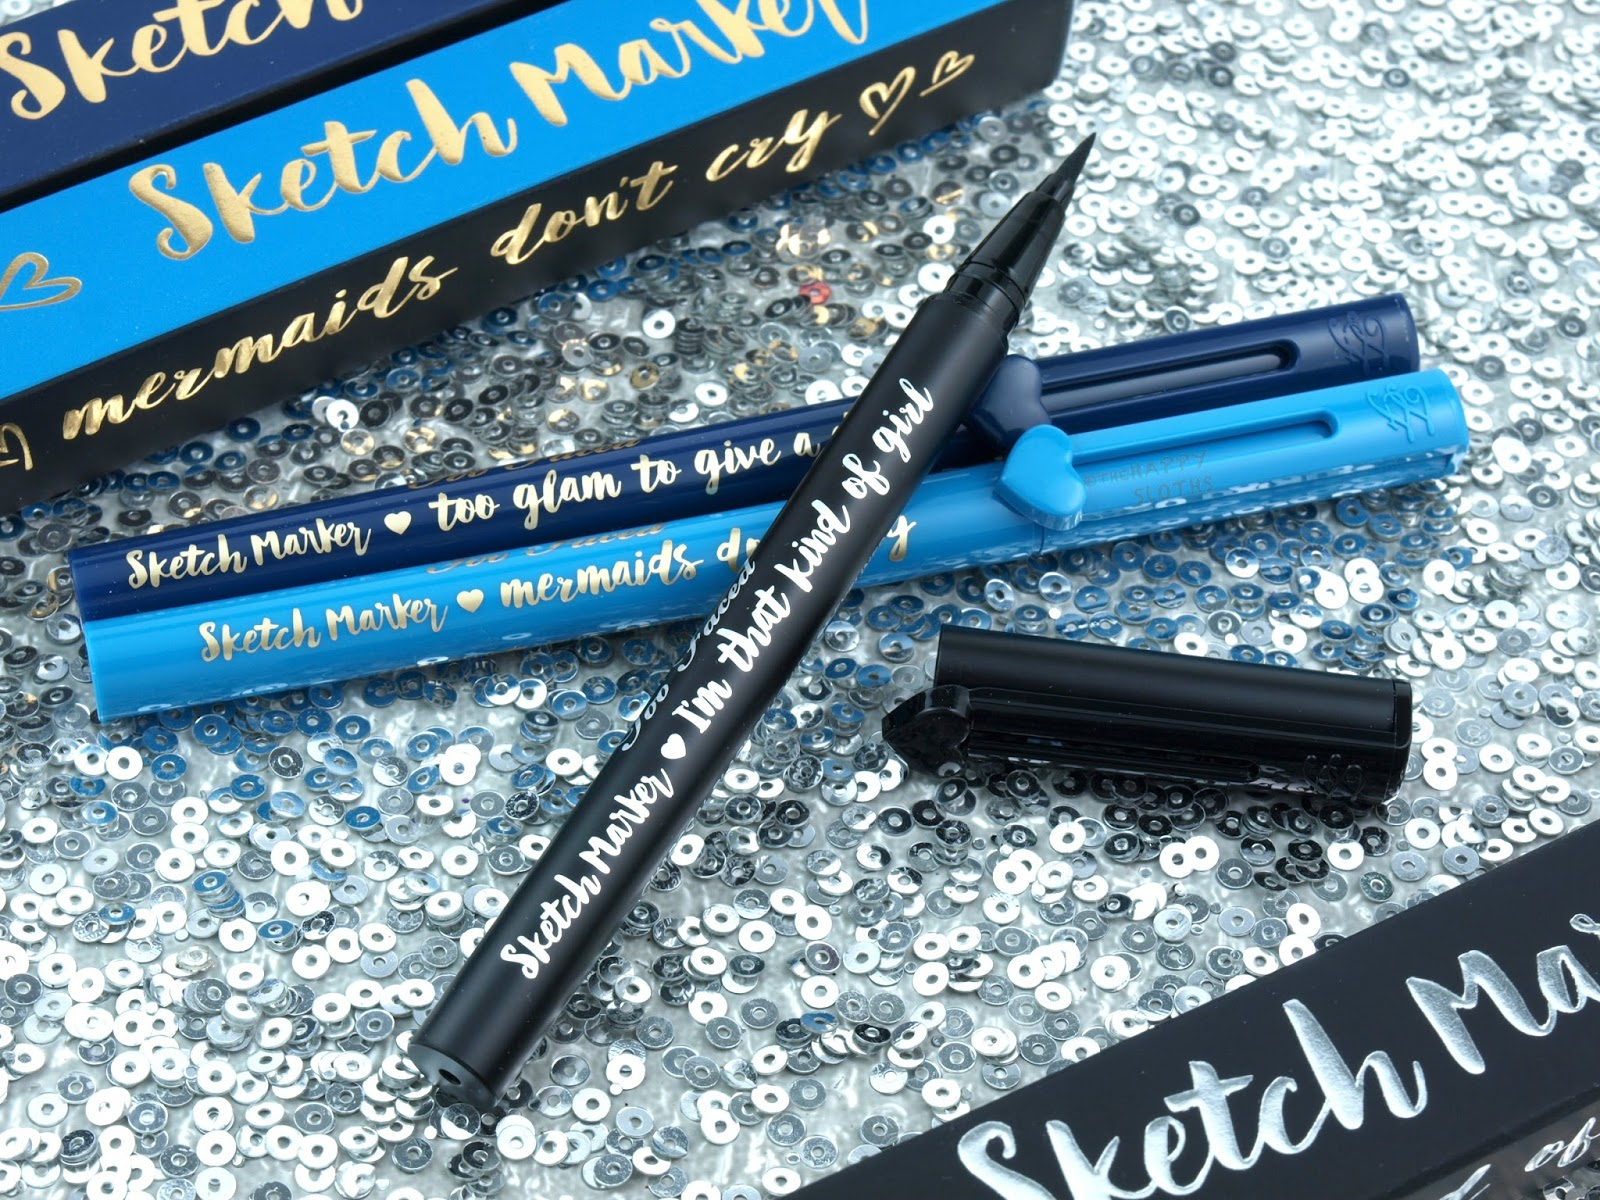 Too Faced Sketch Marker Liquid Art Eyeliner Review And Swatches